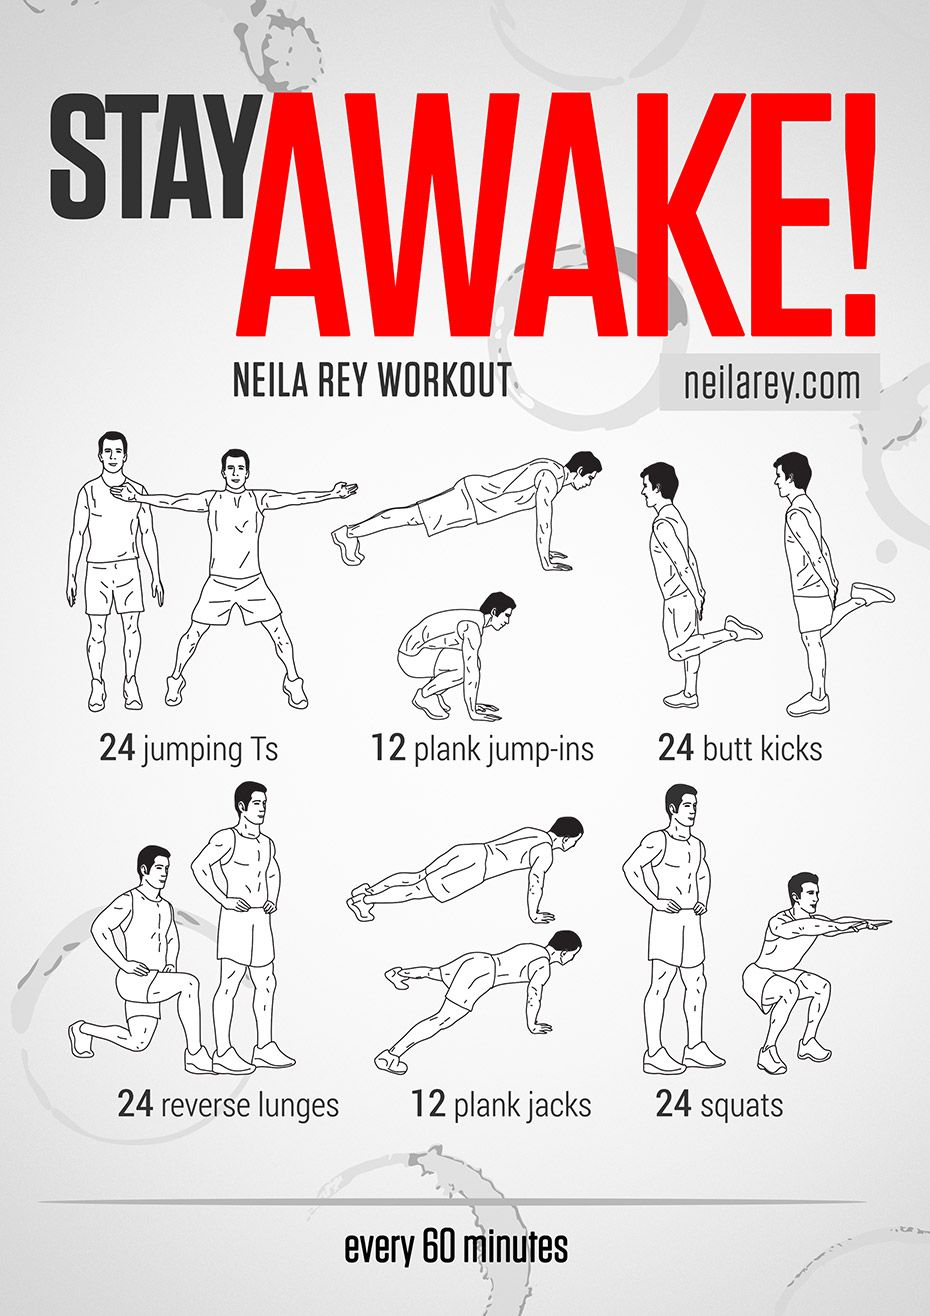 stay awake workout if you need to work late and stay focused stay awake workout if you need to work late and stay focused exercise is a